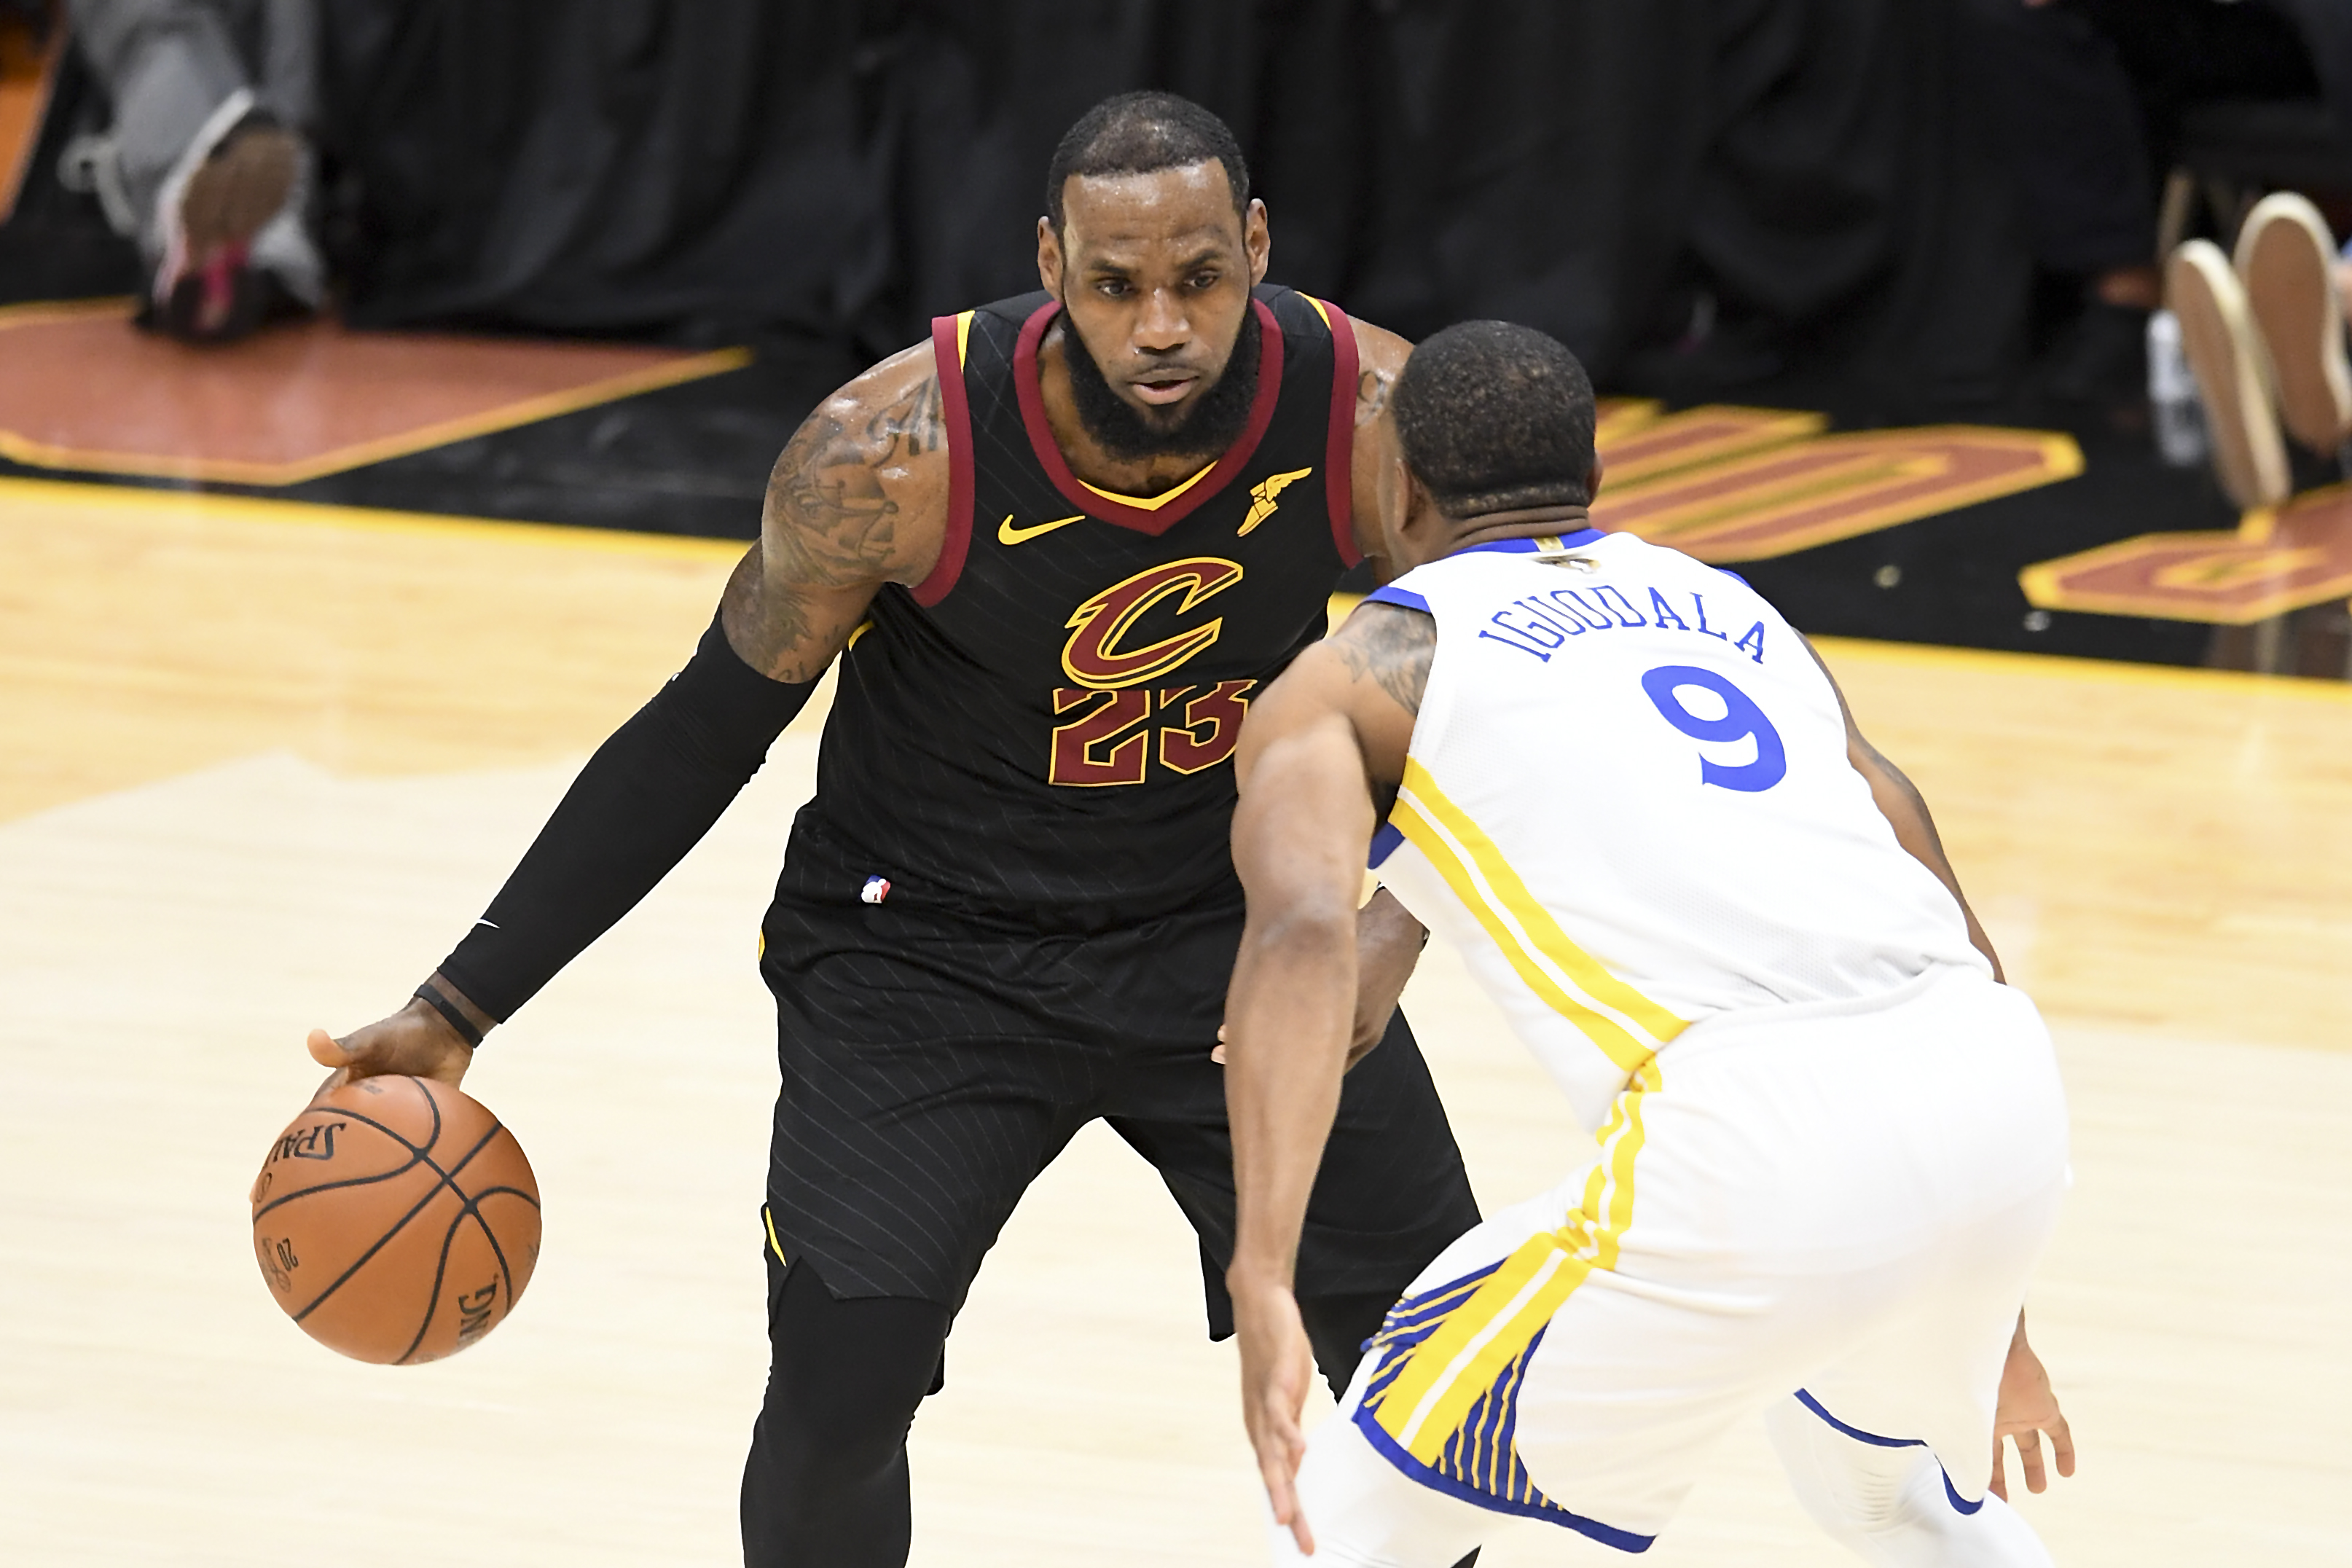 LeBron James #23 of the Cleveland Cavaliers defended by Andre Iguodala #9 of the Golden State Warriors in the first half during Game Four of the 2018 NBA Finals at Quicken Loans Arena on June 8, 2018 in Cleveland, Ohio.